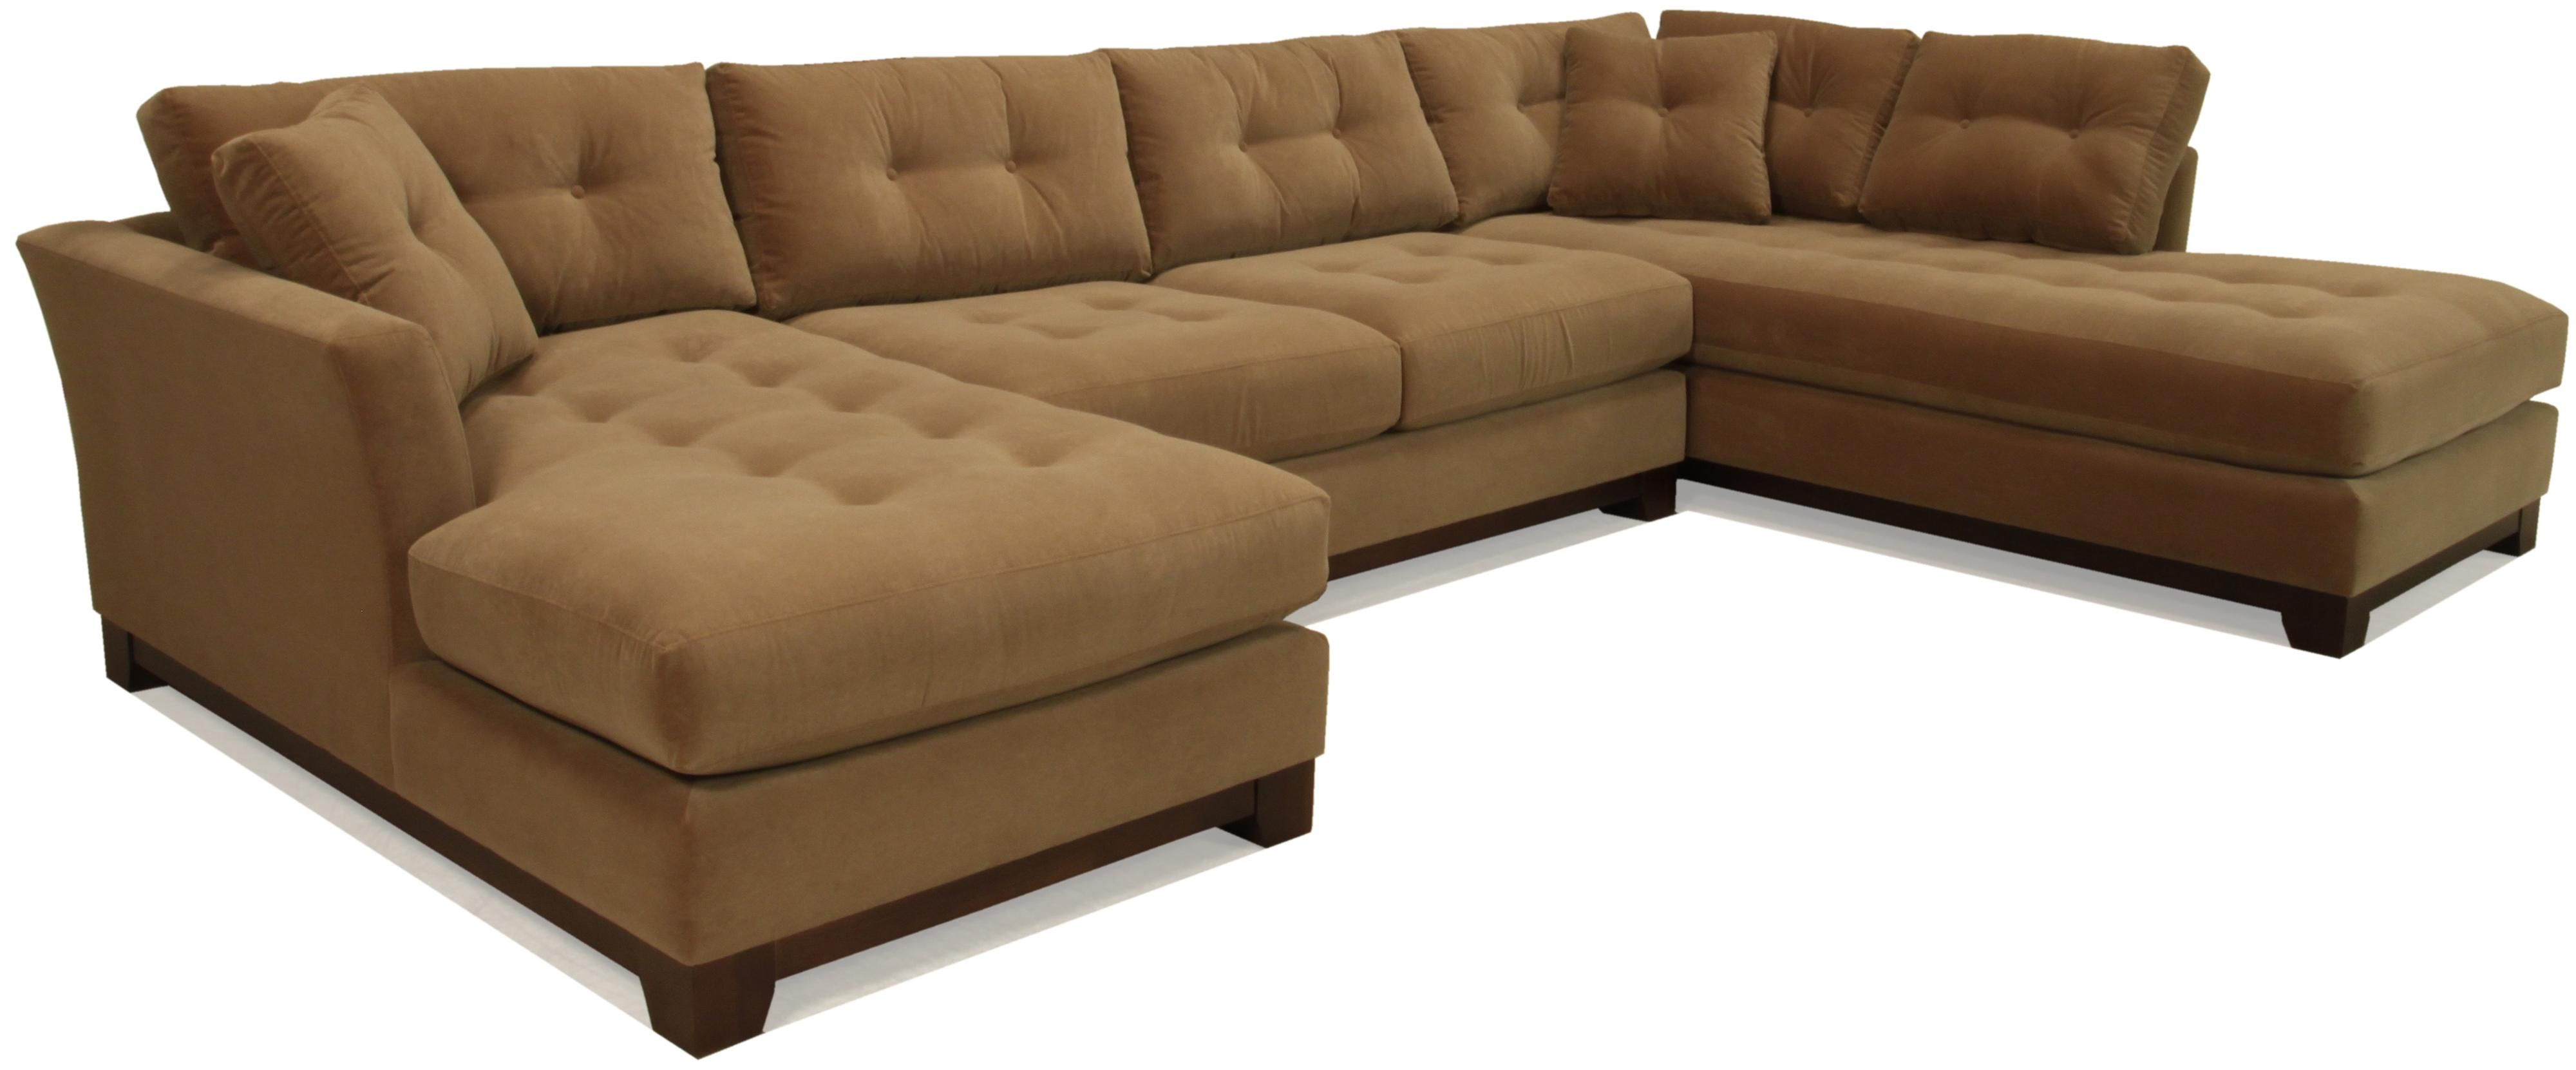 1260 Sectional Sofa by Freestyle Decor Pinterest